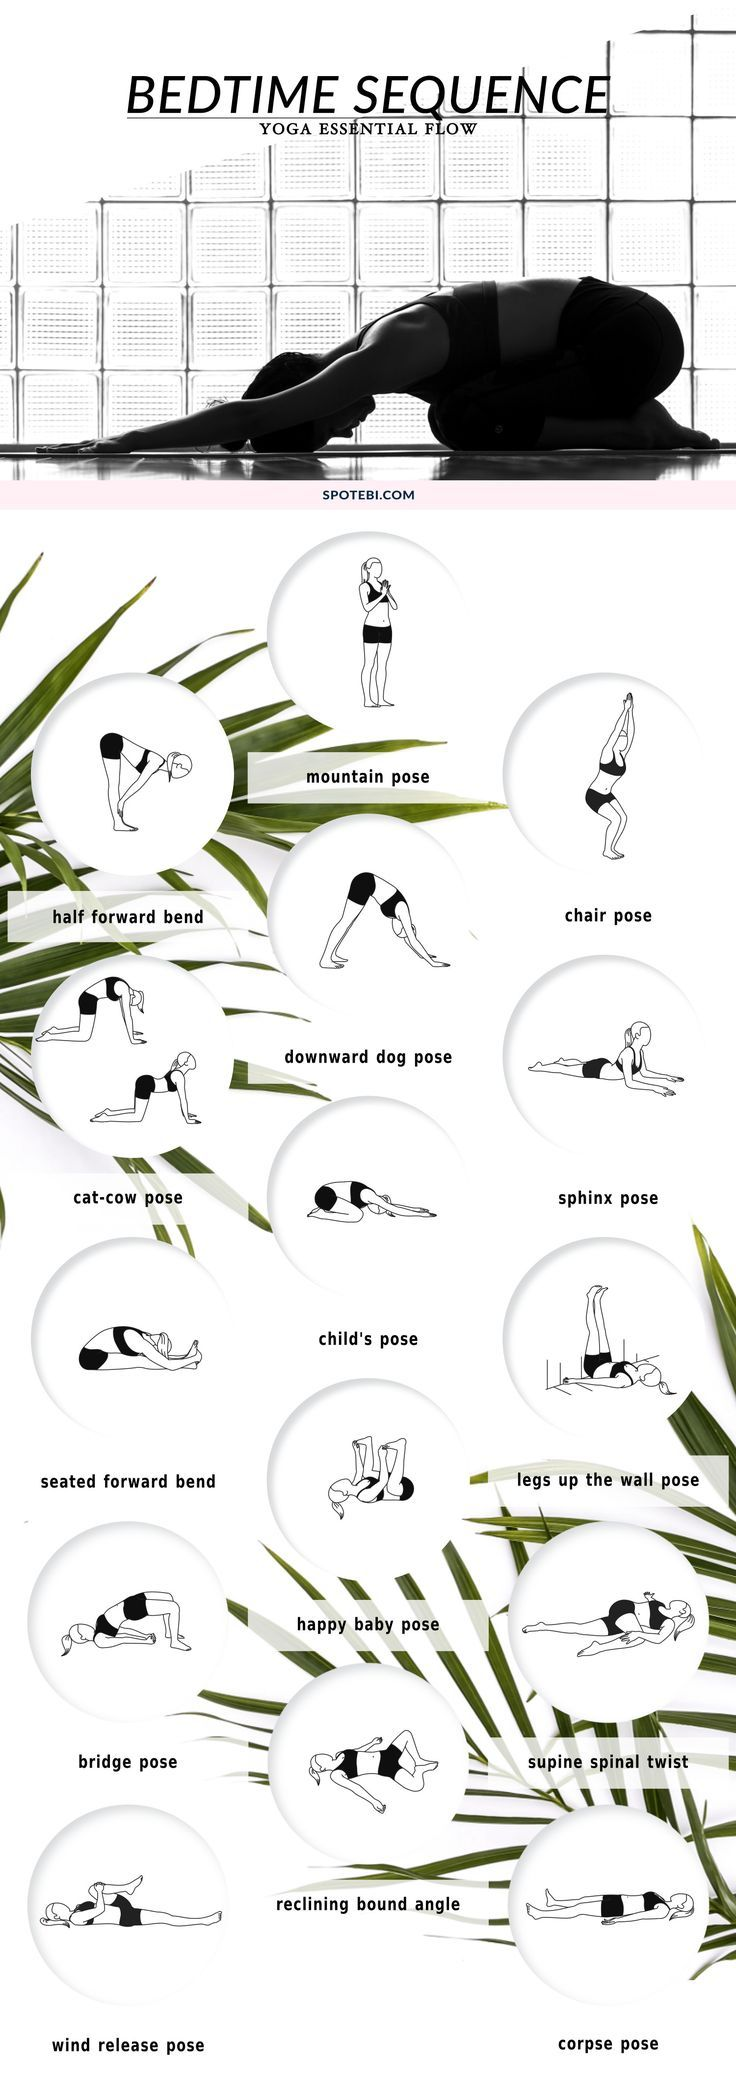 """Beat insomnia and boost relaxation with our bedtime essential flow. A 12 minute yoga sequence perfect to soothe your mind and body before bed. Put on your coziest PJs, grab a cup of chamomile tea and unwind! <a href=""""http://www.spotebi.comyoga-sequences/bedtime-soothing-flow/"""" rel=""""nofollow"""" target=""""_blank"""">www.spotebi.com...</a> http://www.spotebi.comyoga-sequences/bedtime-soothing-flow/"""